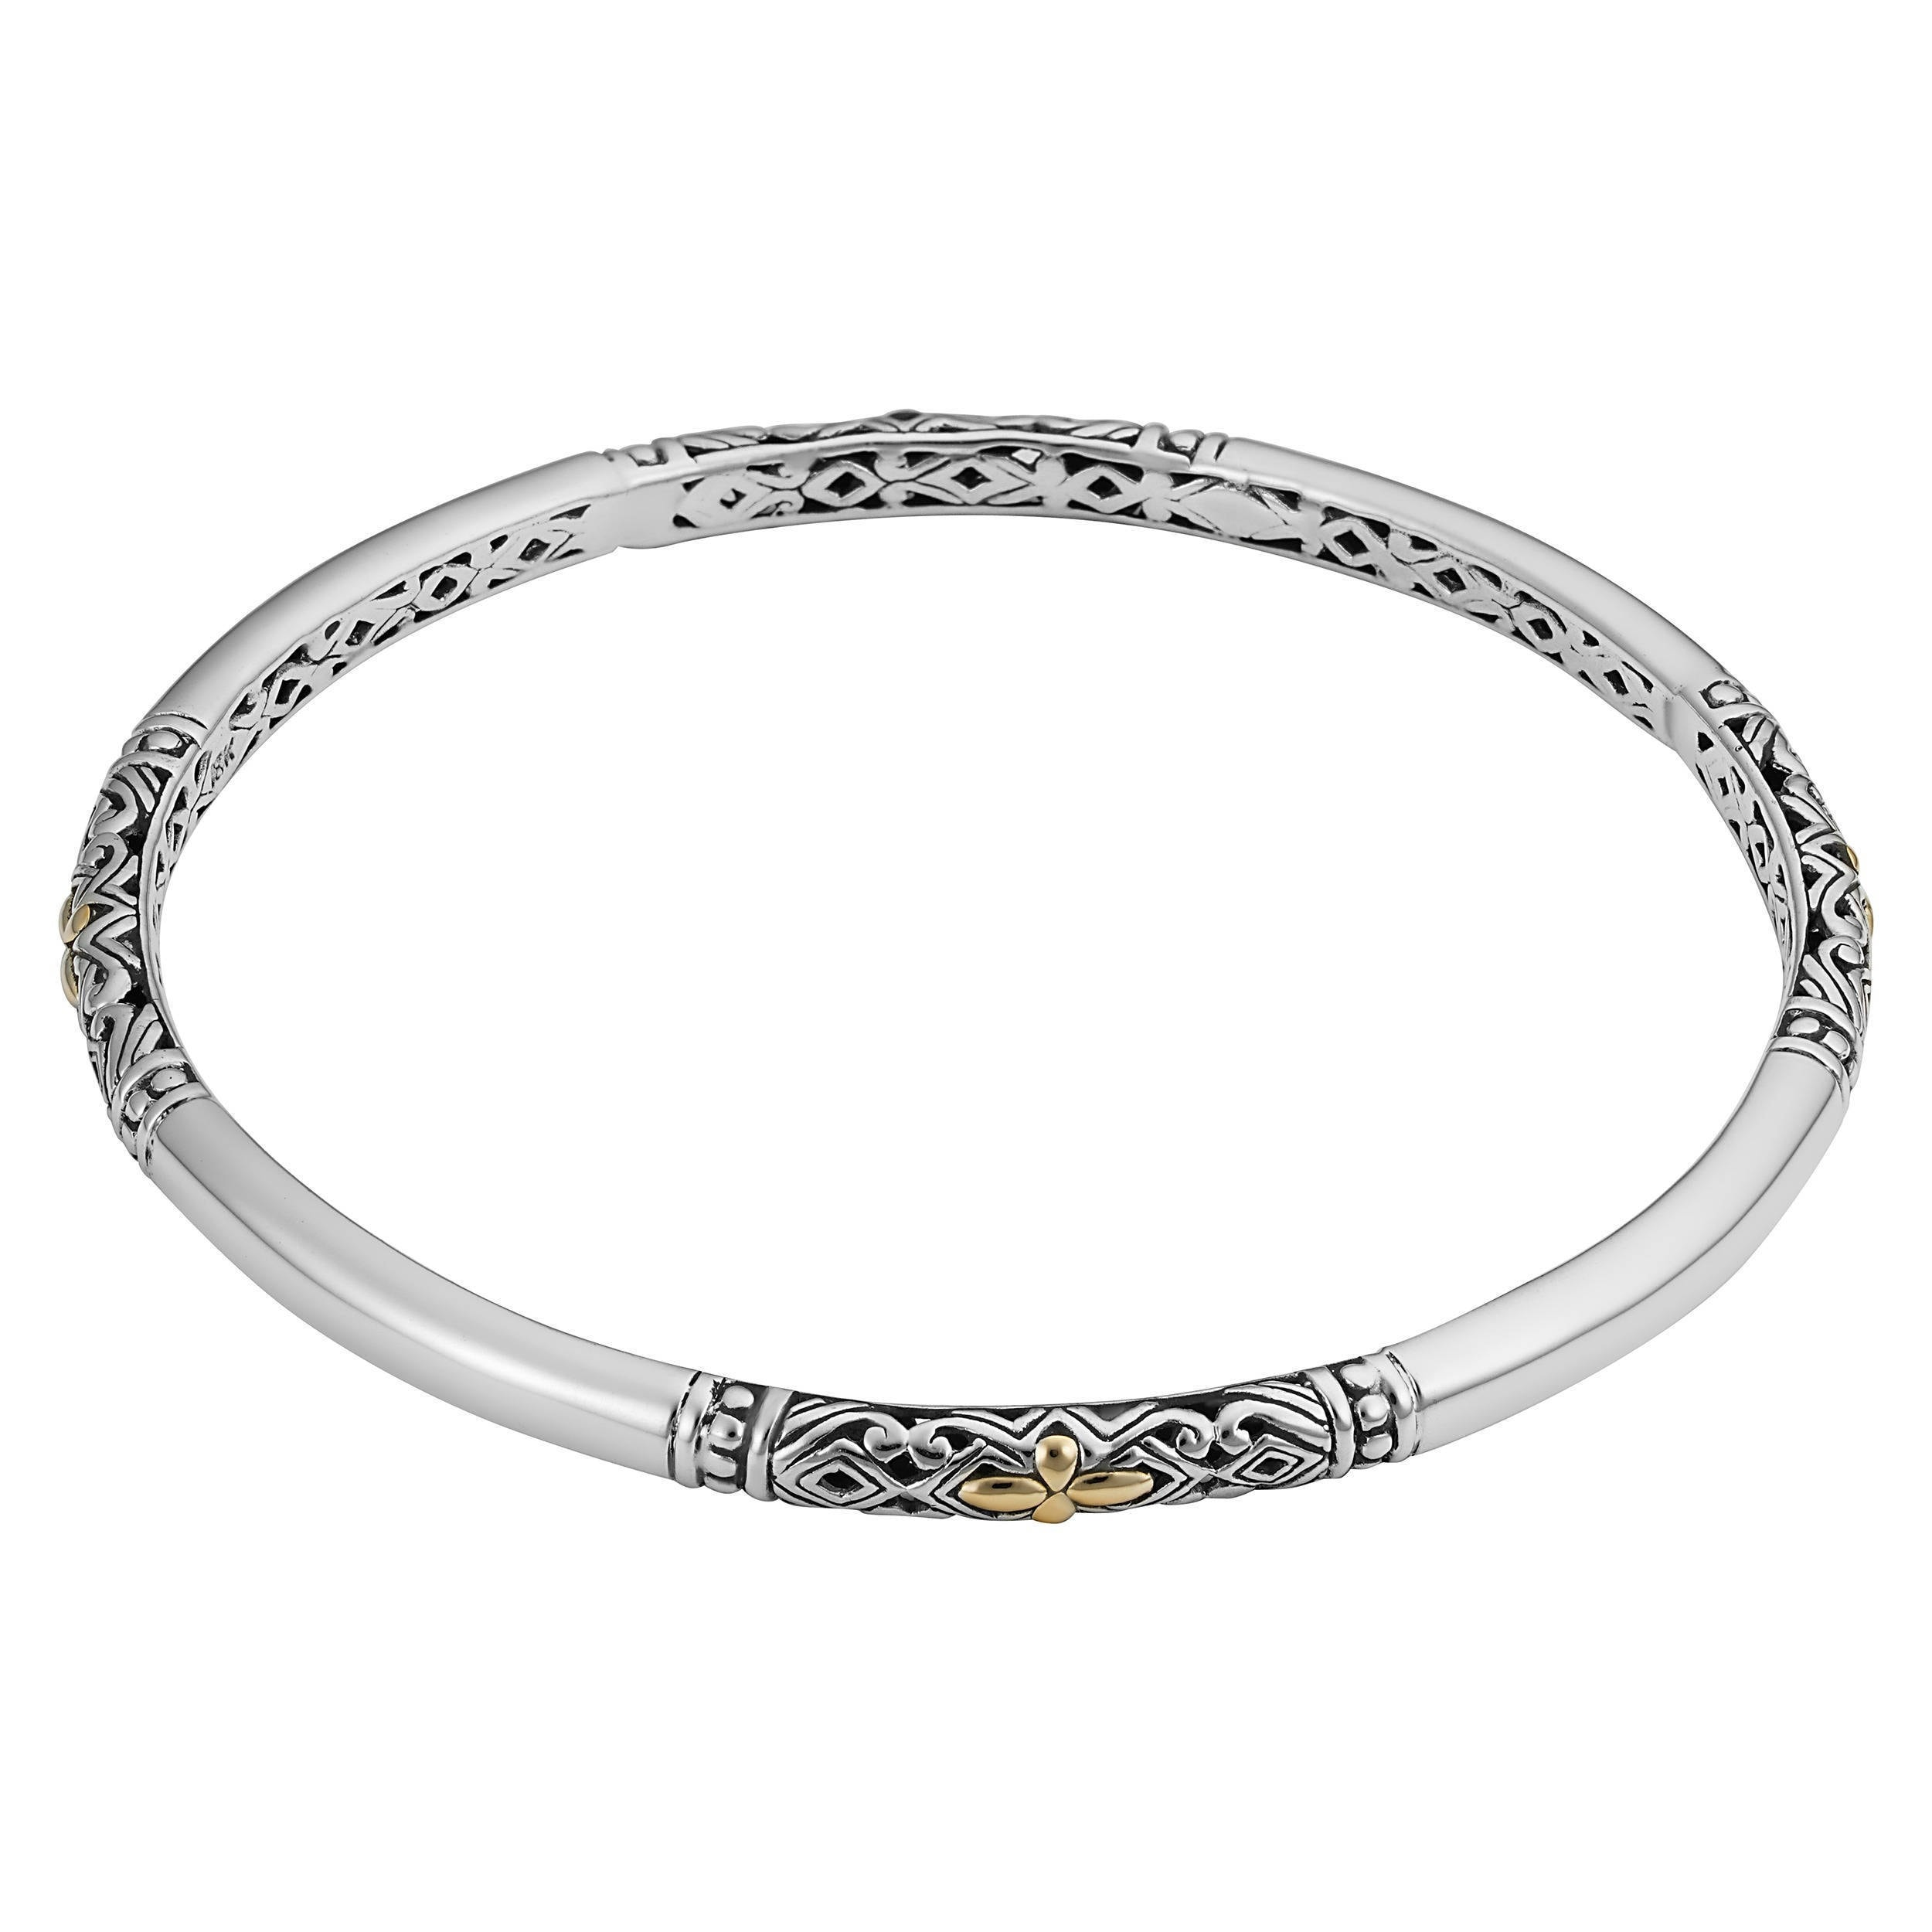 products an with the handmade designer bangle bracelets bangles silver or plain features finest intricately this is from and earthy sterling leaf thai that made amazing a sideways piece stylish bracelet feather details pb detailed